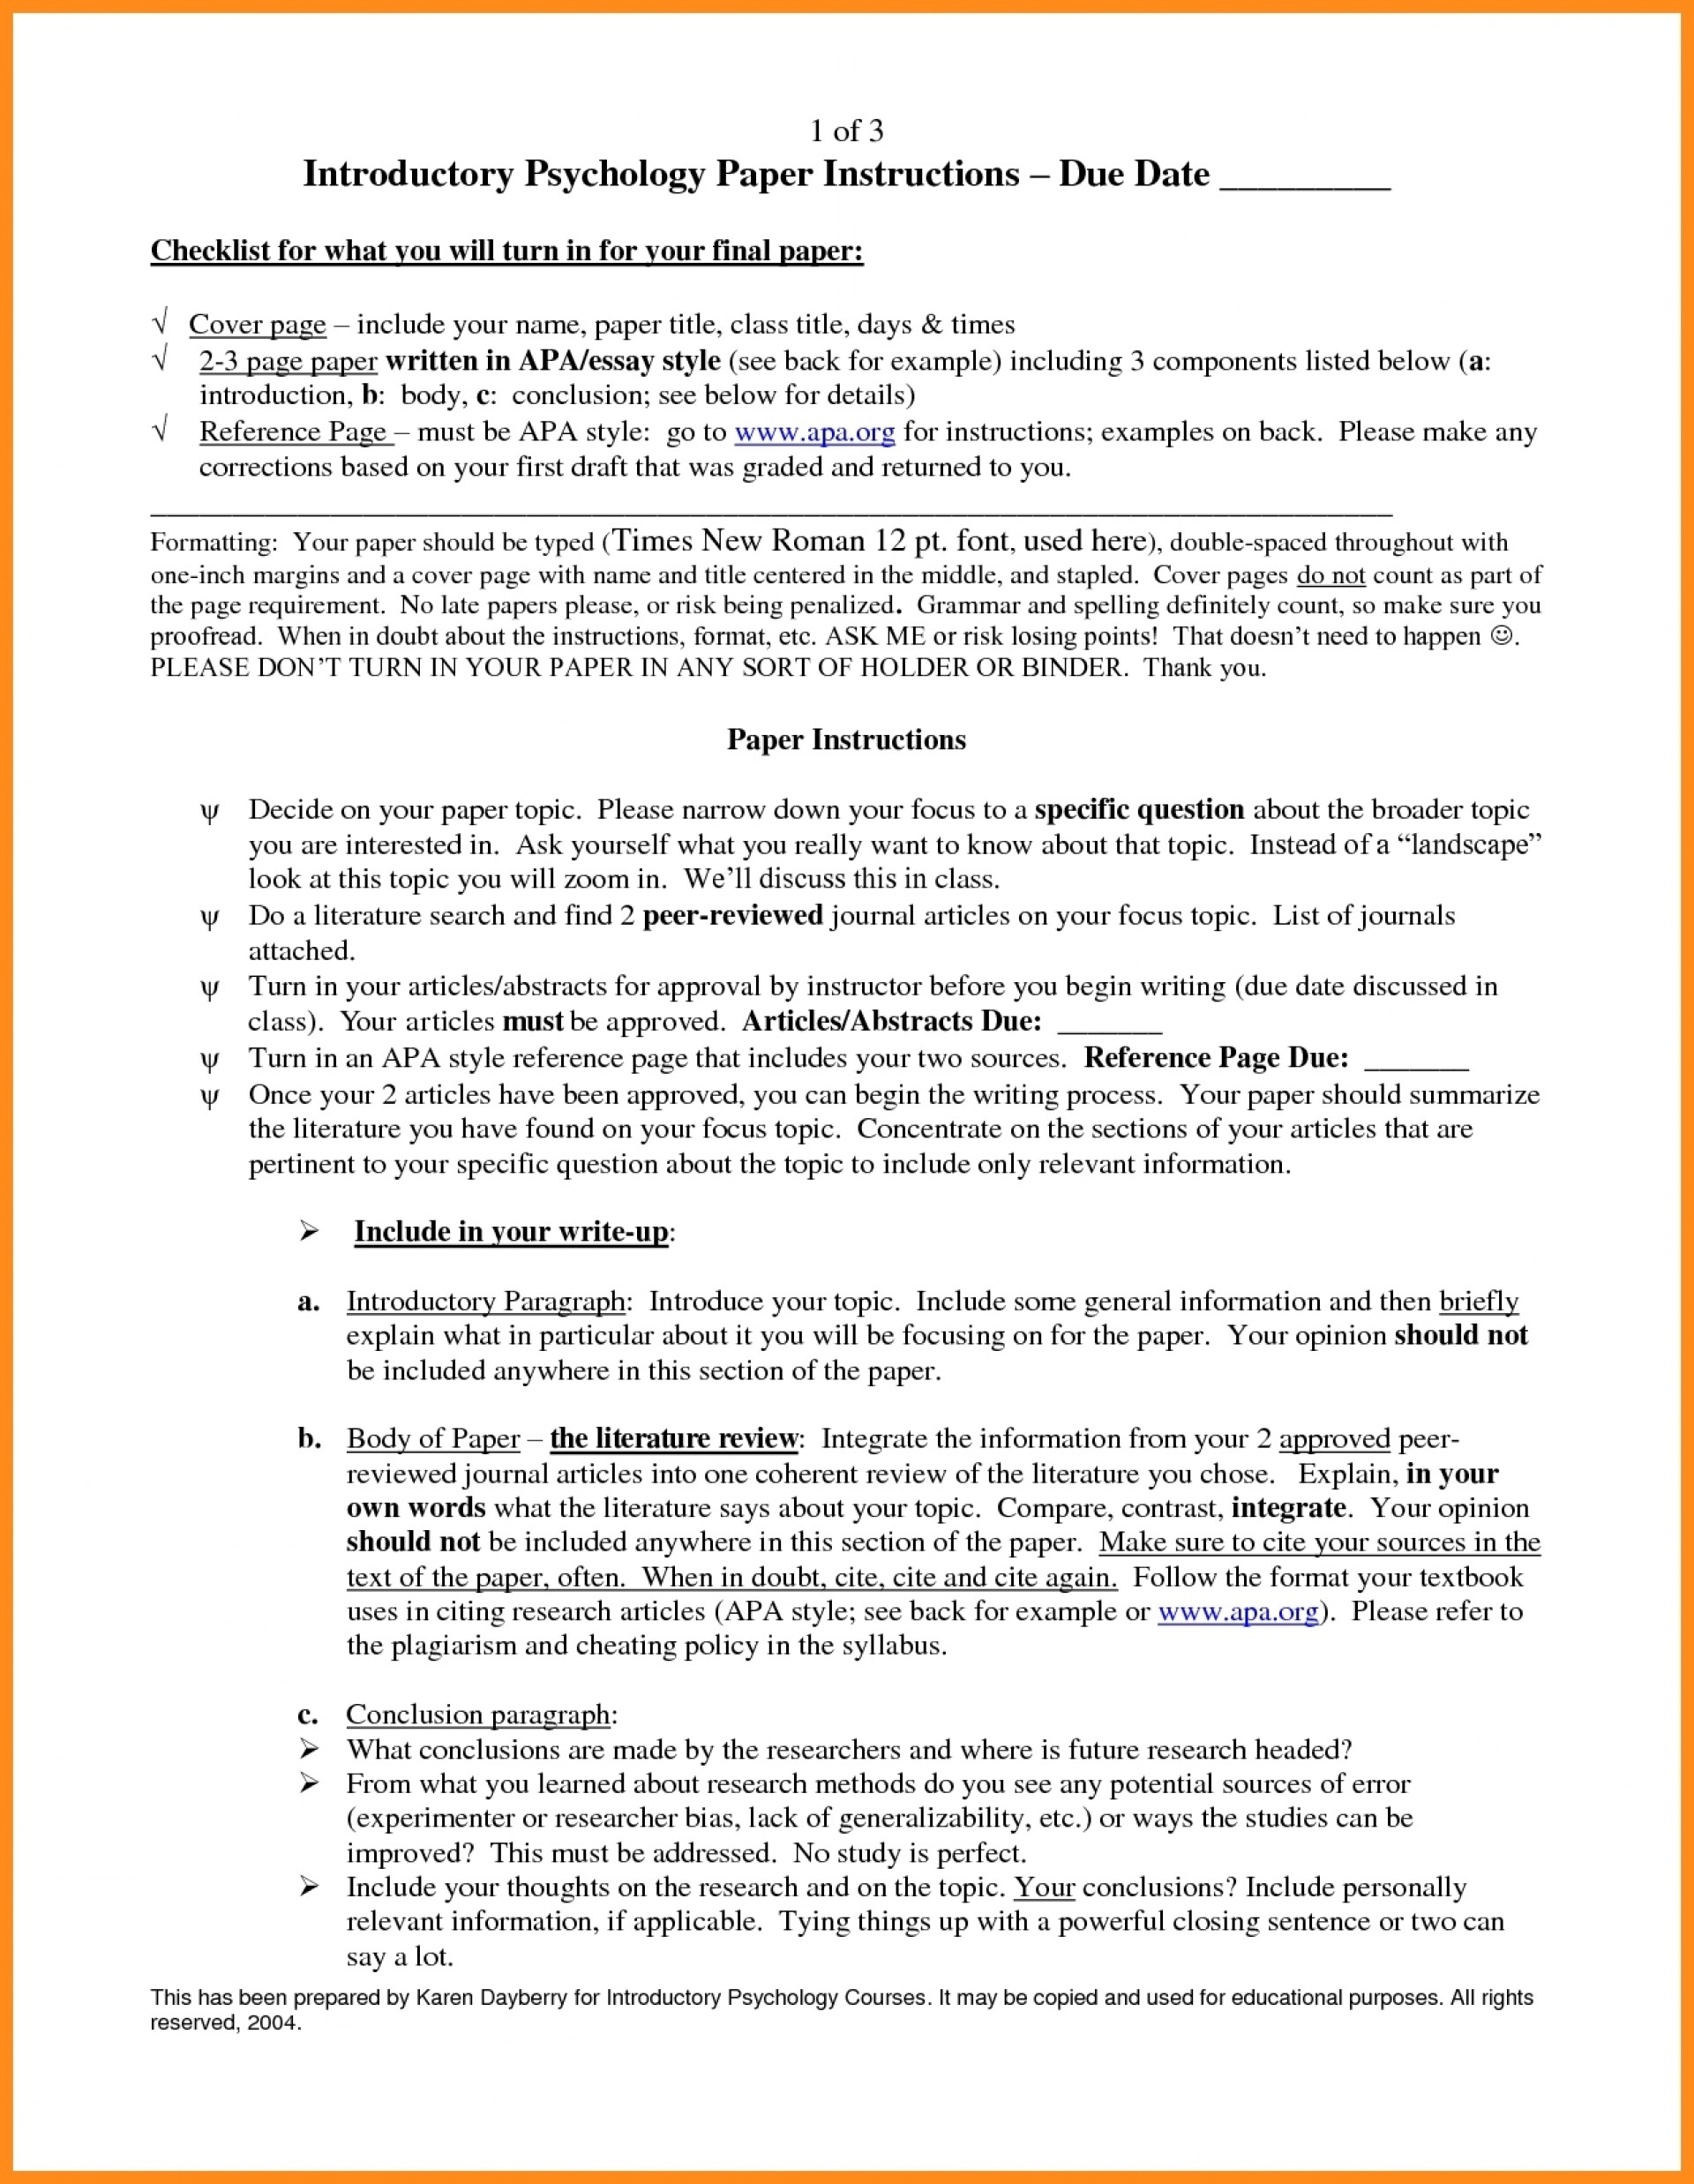 019 Research Paper Conclusion Paragraph Format Examples For Papers And Forms Top 1920